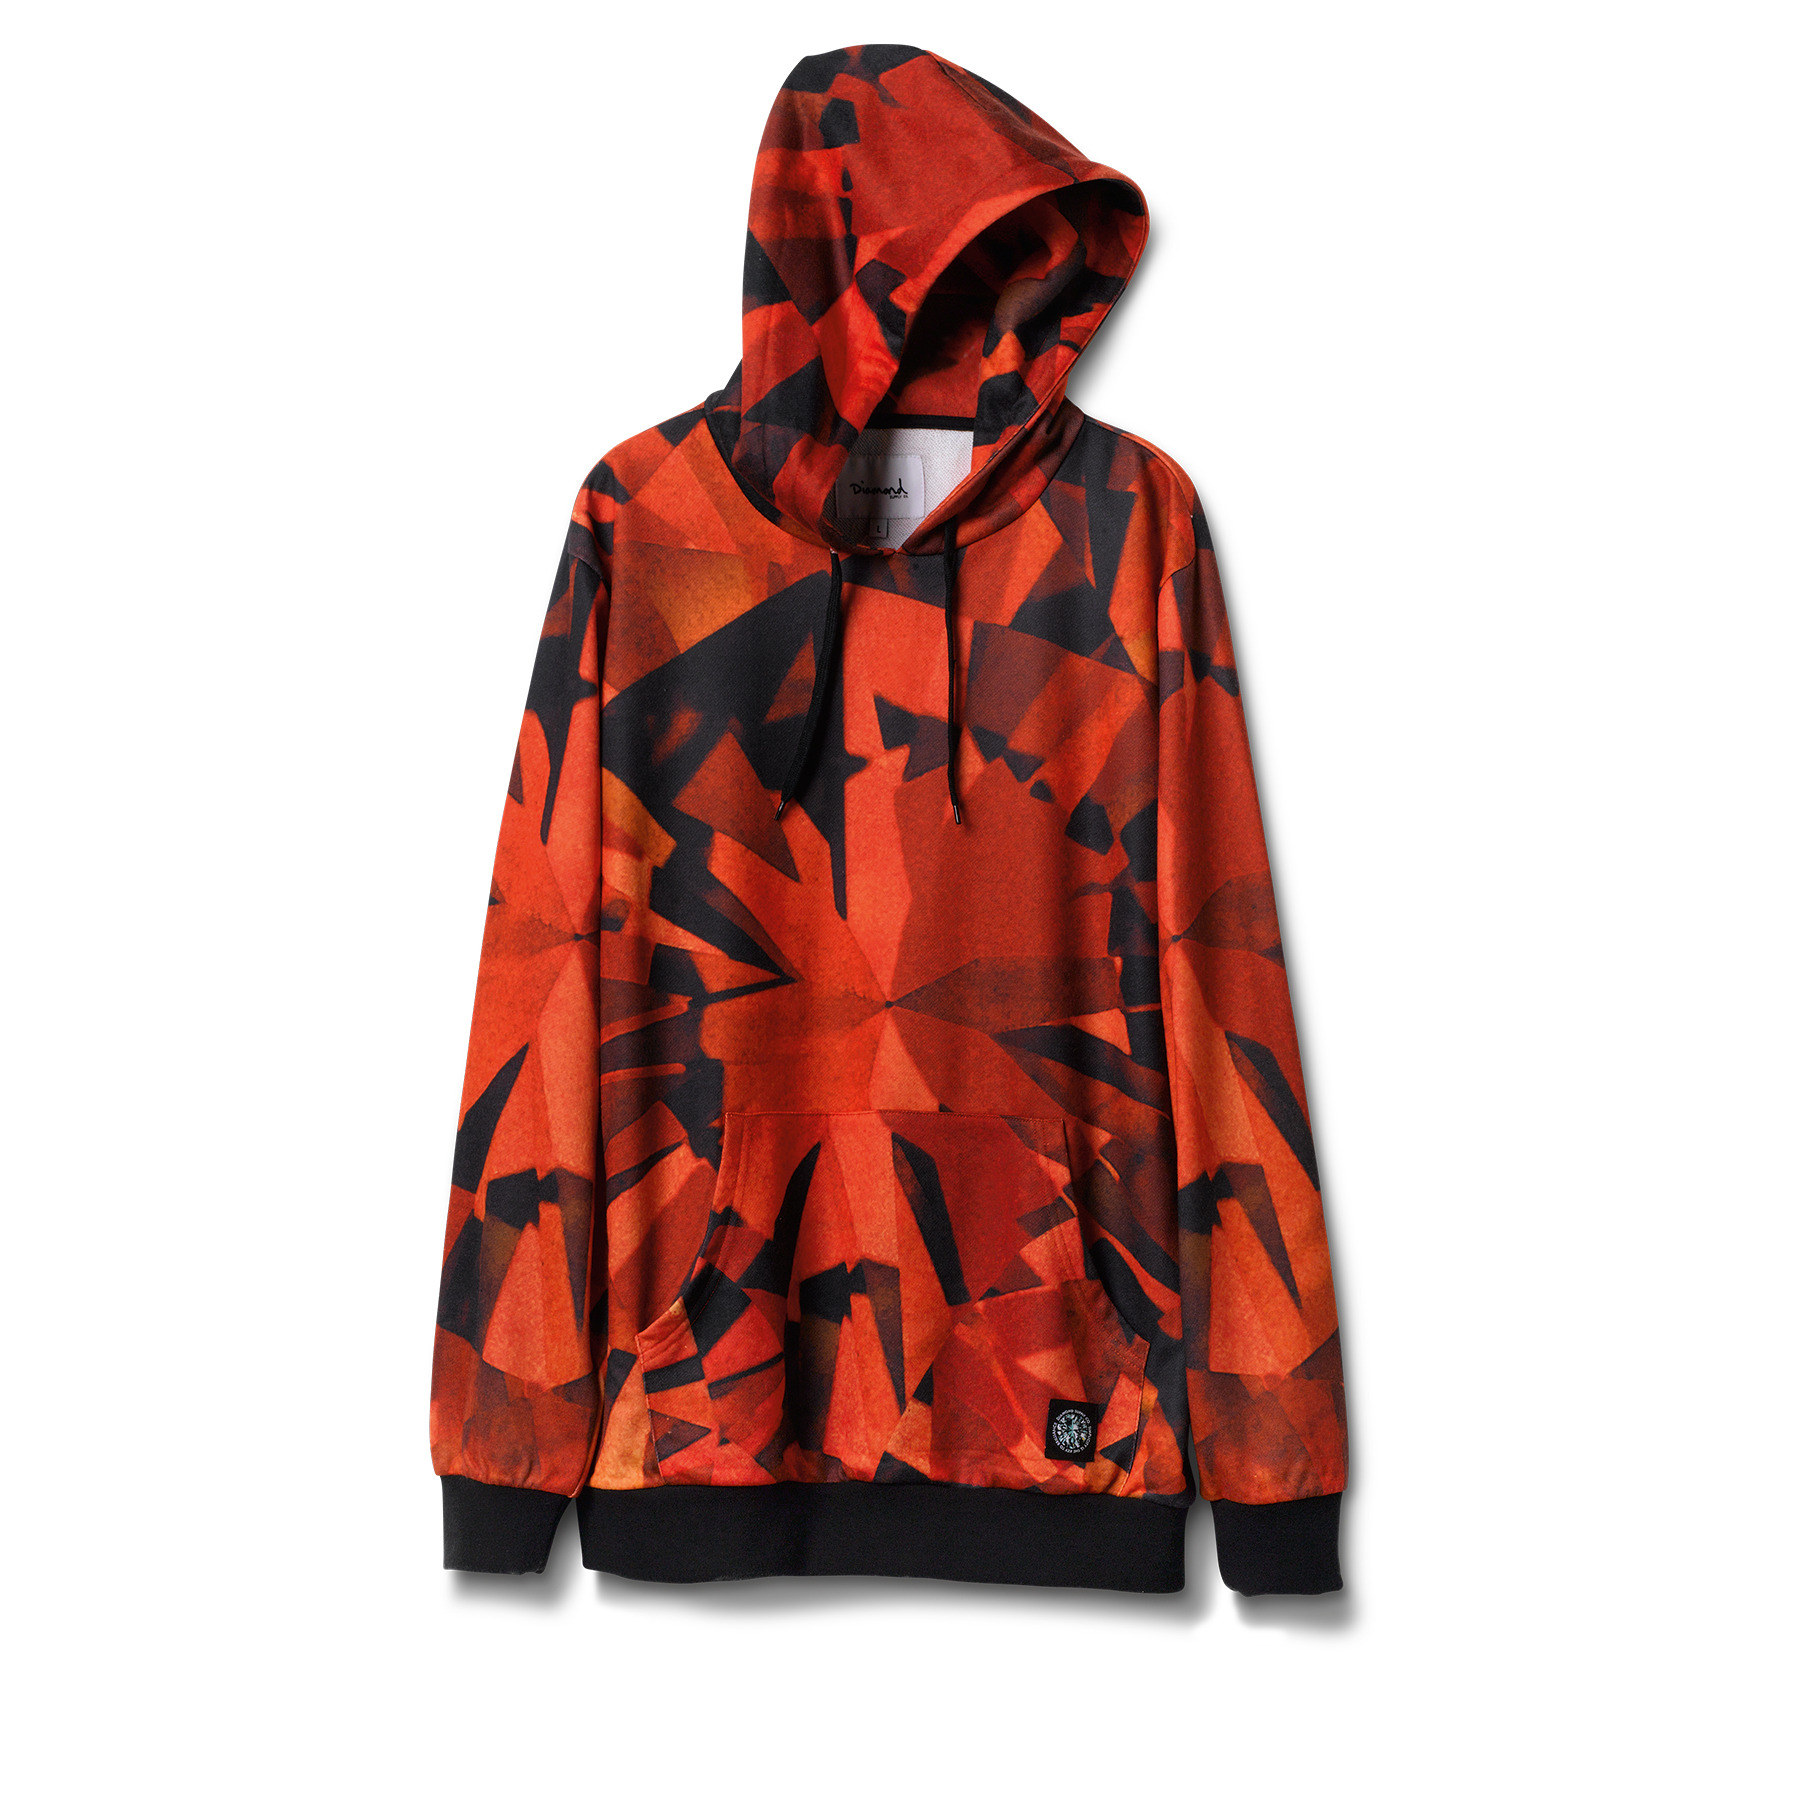 sp_15_cutnsew_img_web_2__0002_dmnd-sp15-fleece-simplicityhoodie-ruby.jpg